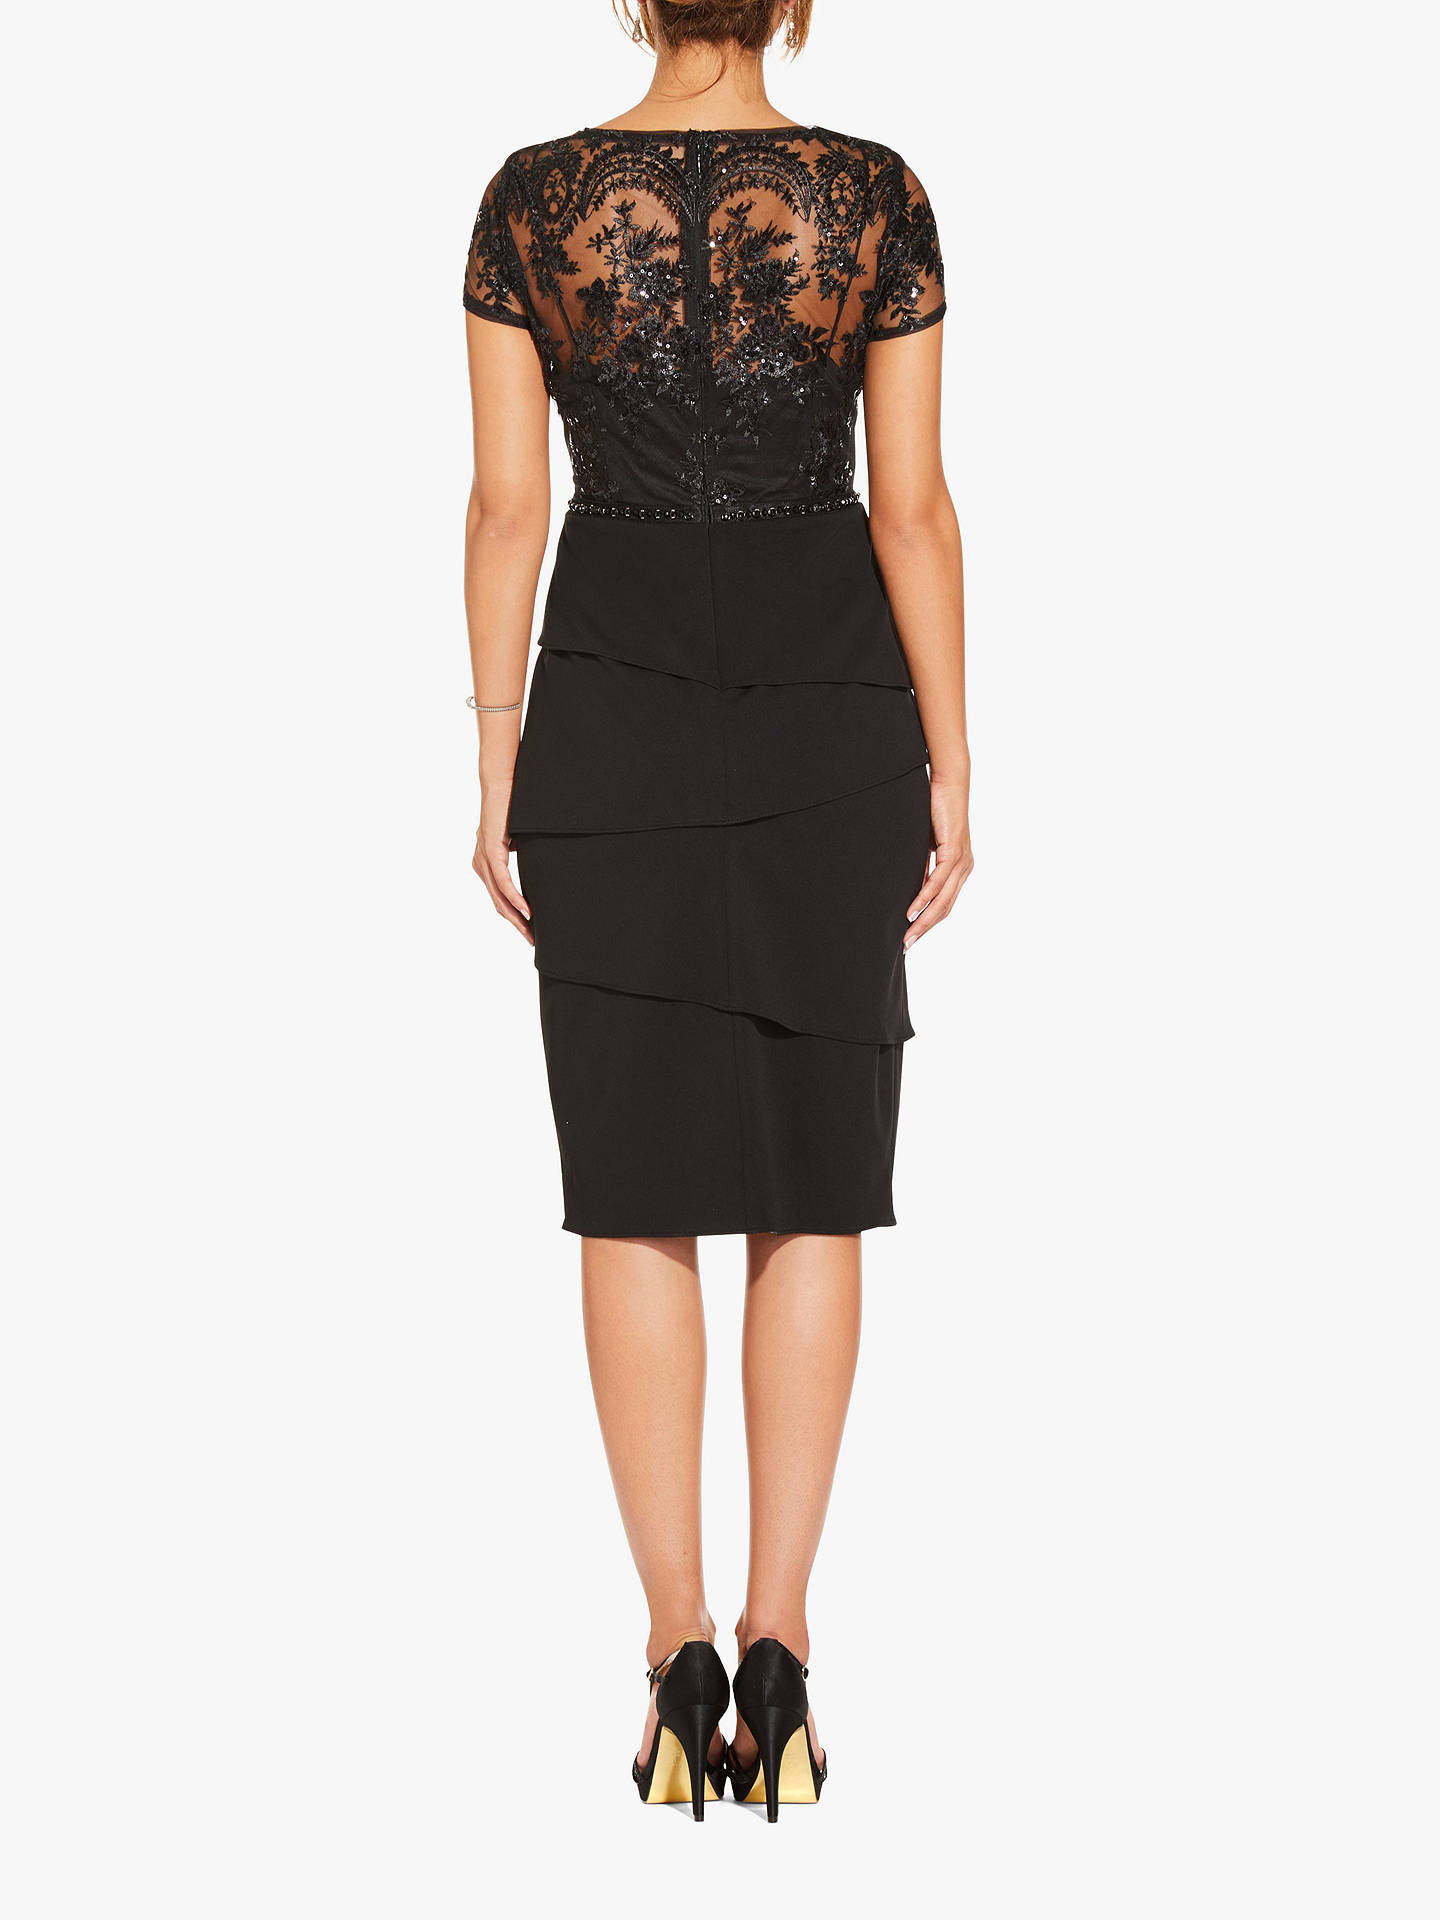 BuyAdrianna Papell Short Sequin Layered Dress, Black, 8 Online at johnlewis.com